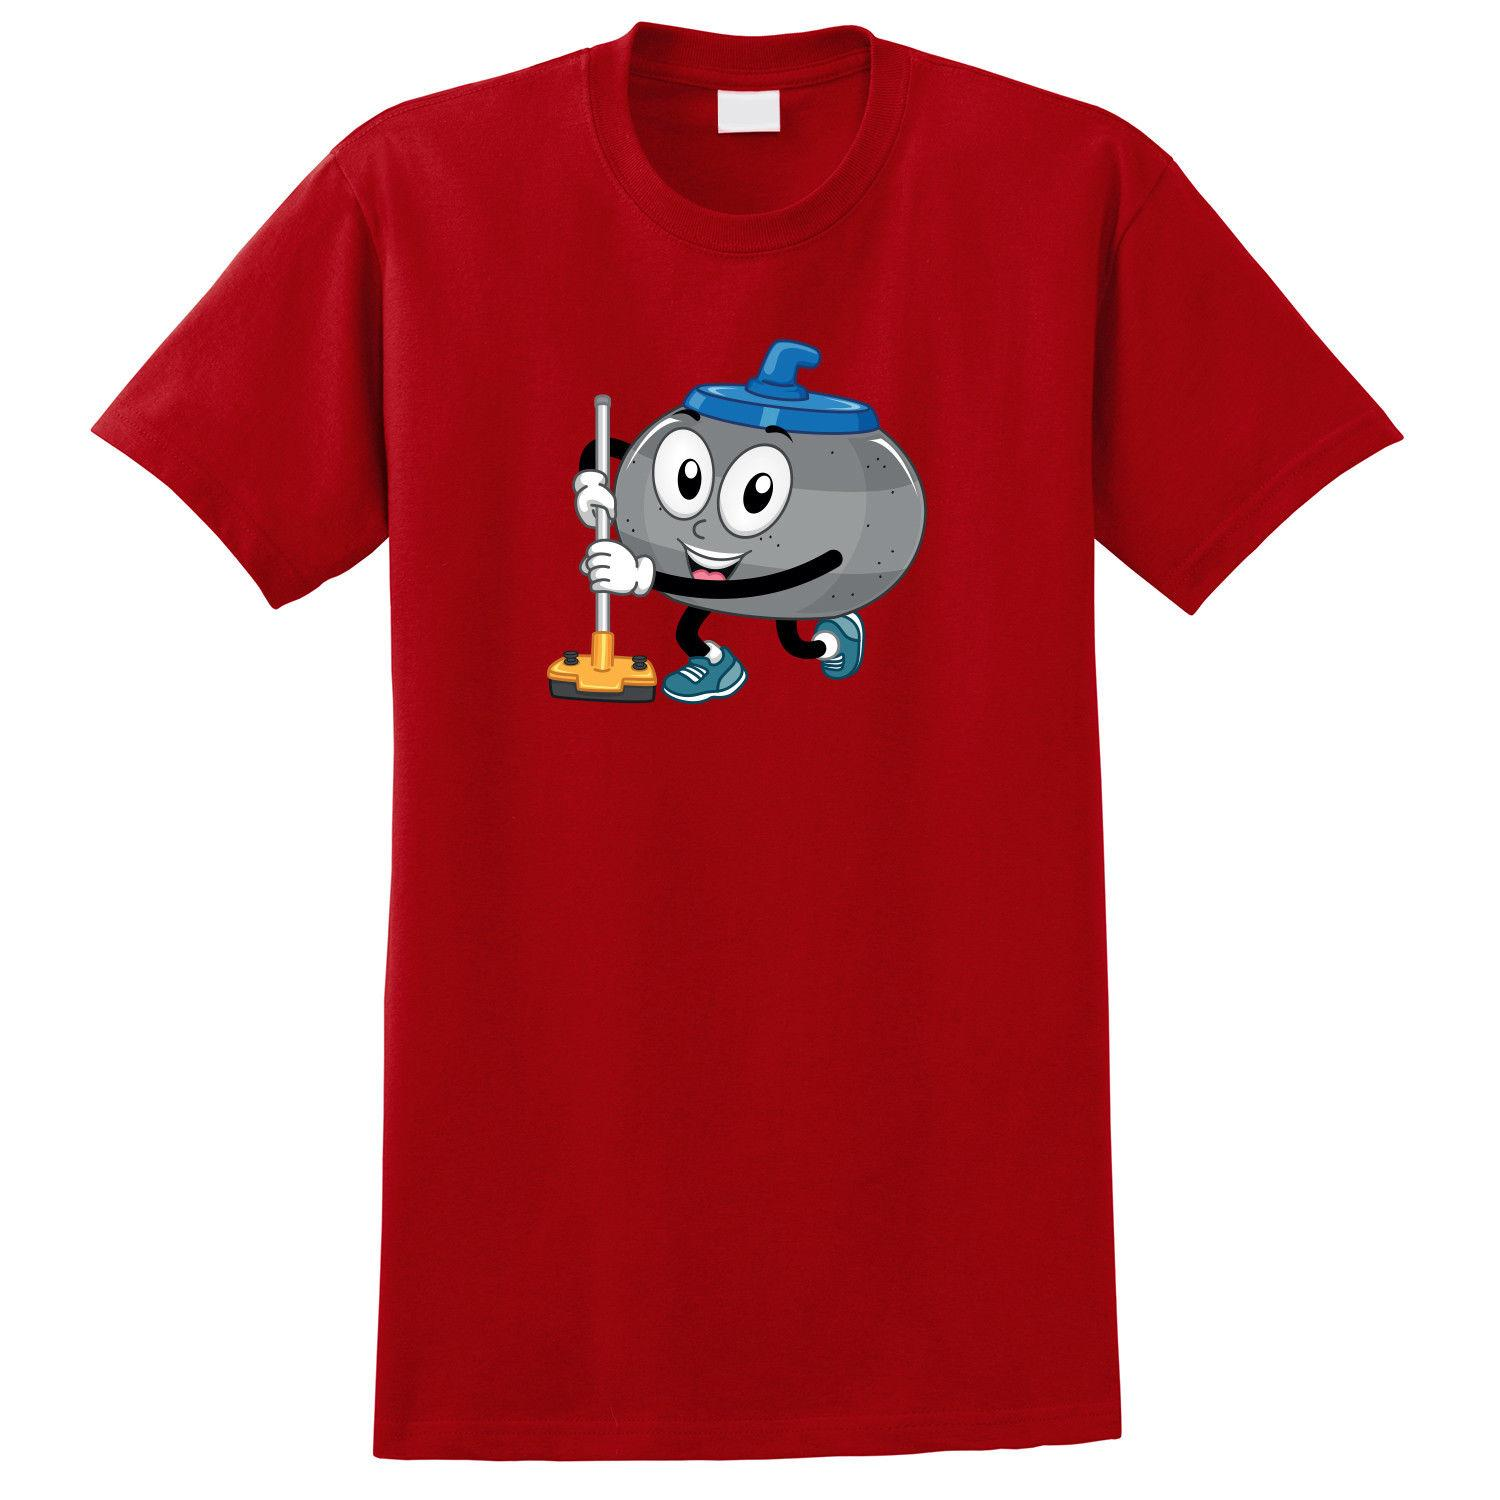 Curling Stone Cartoon T-shirt drôle expédition gratuite cadeau unisexe occasionnel tshirt